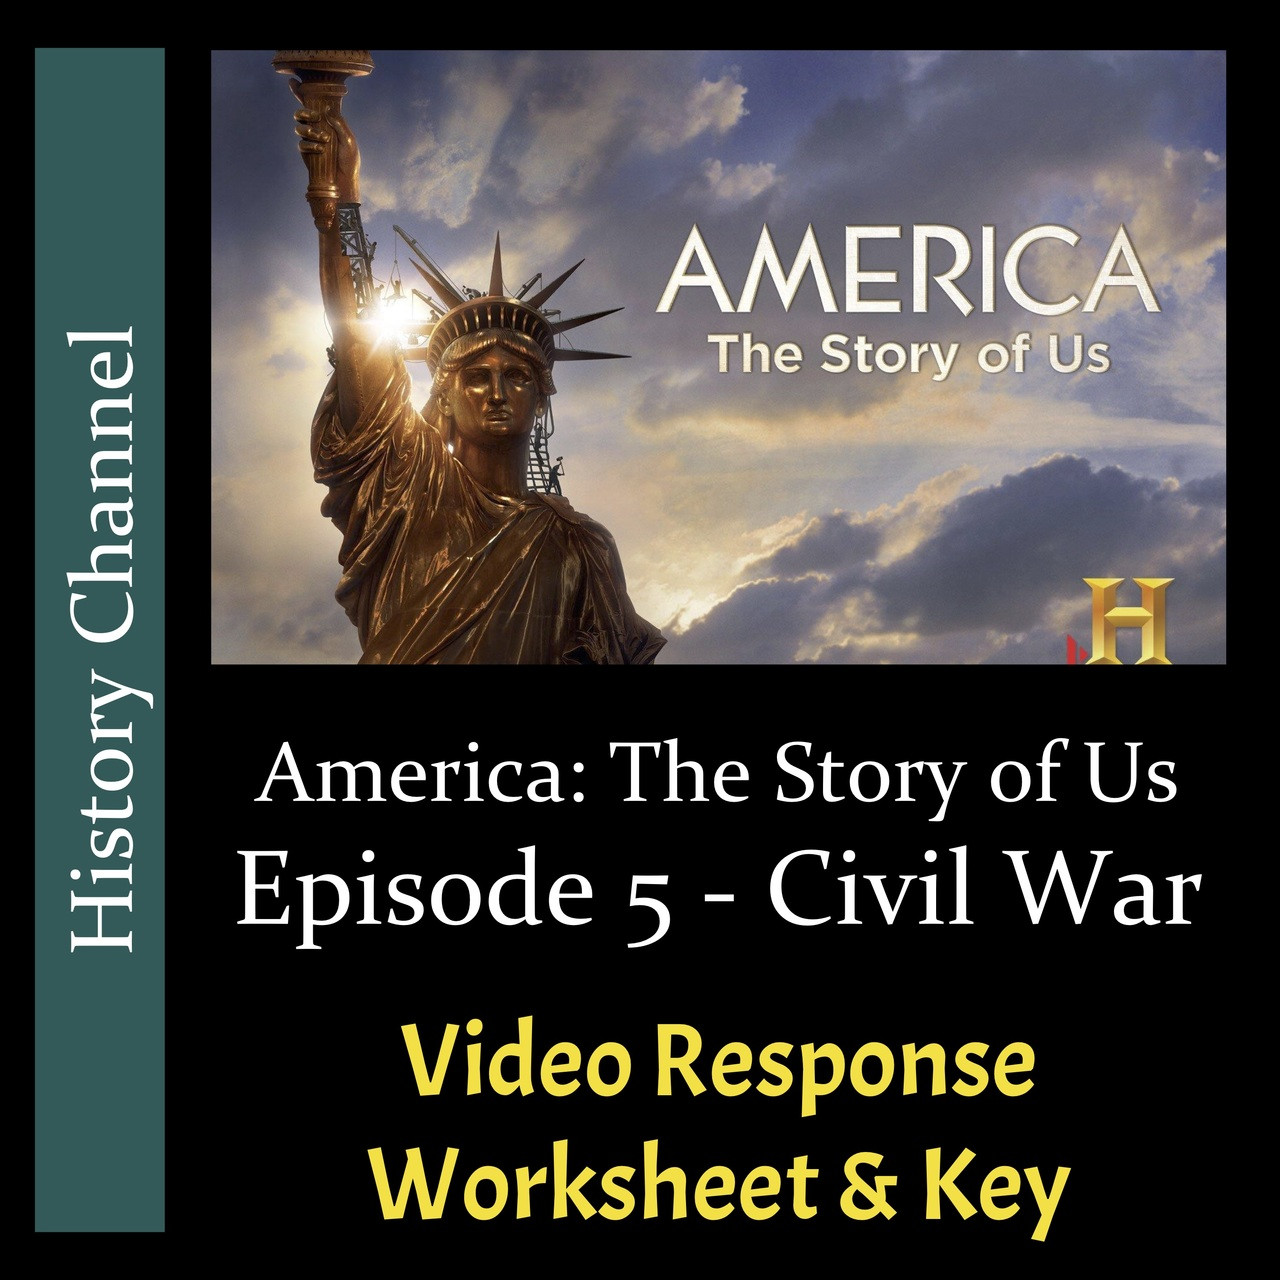 America The Story of Us - Episode 05: Civil War - Video Response Worksheet  \u0026 Key (Editable) - Amped Up Learning [ 1280 x 1280 Pixel ]